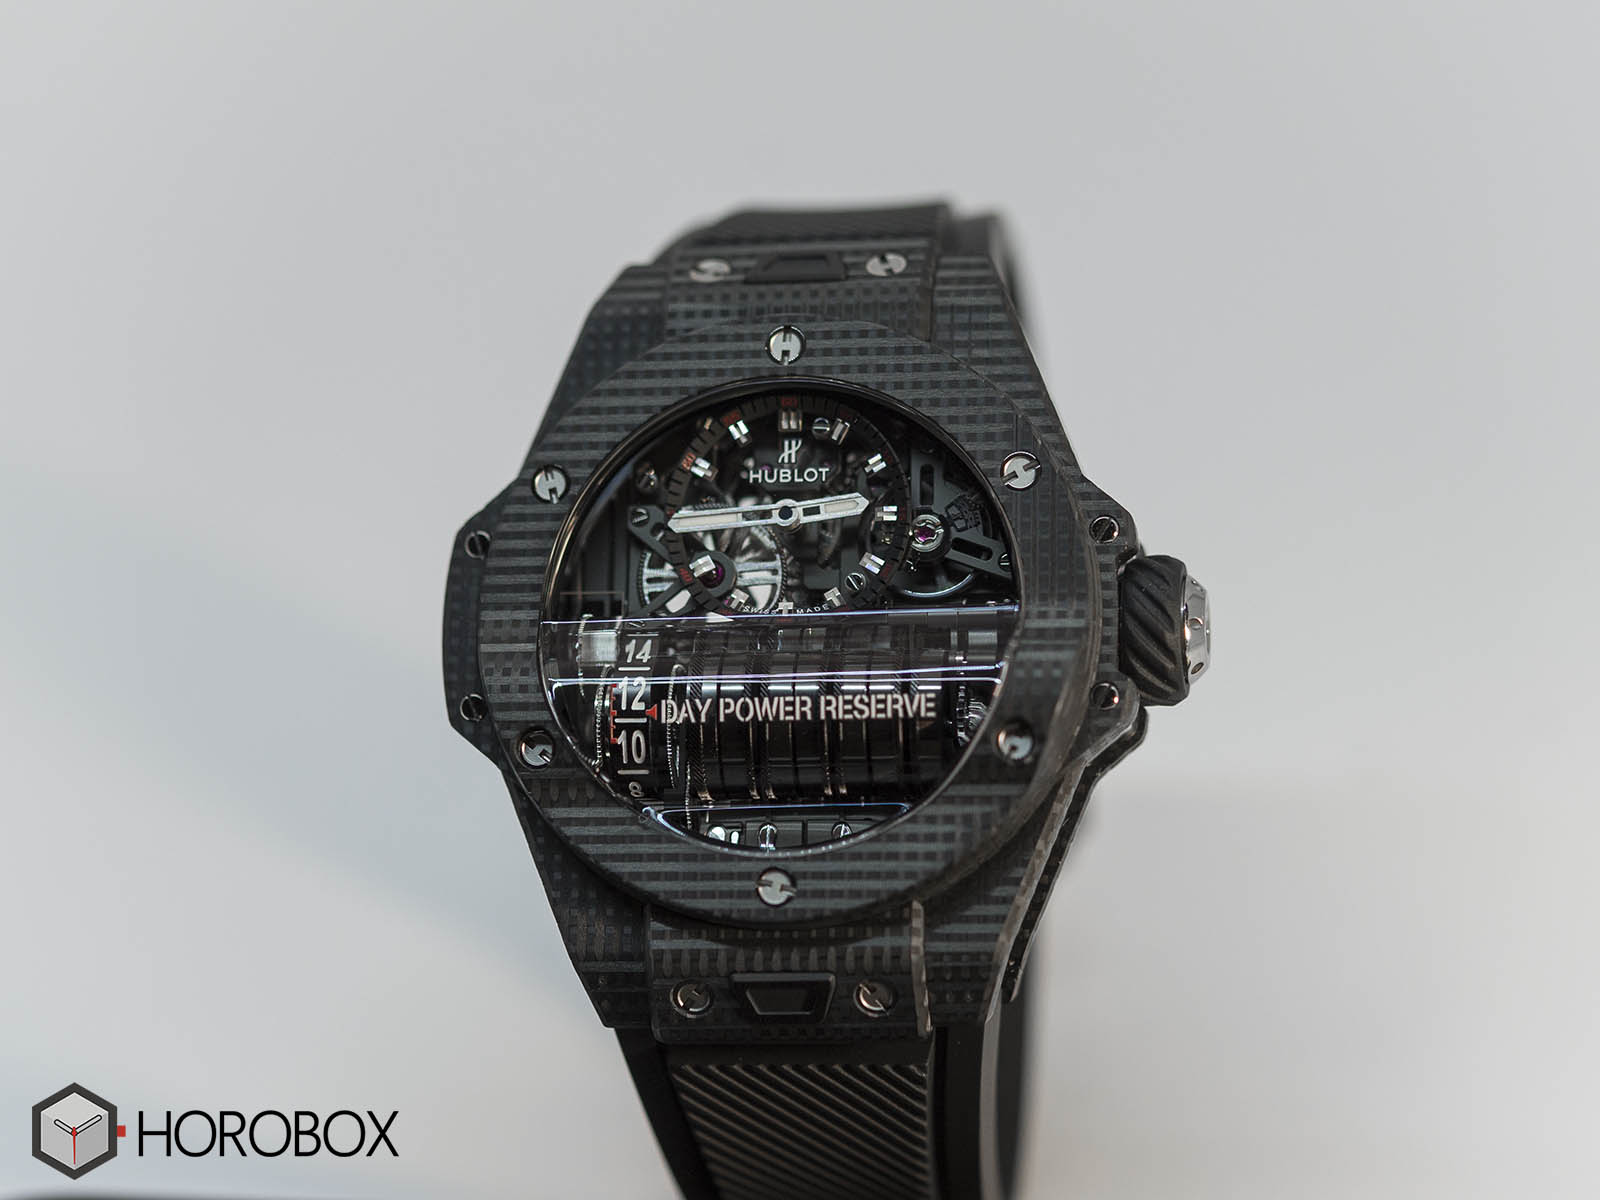 911-qd-0123-rx-hublot-mp-11-power-reserve-14-days-4.jpg